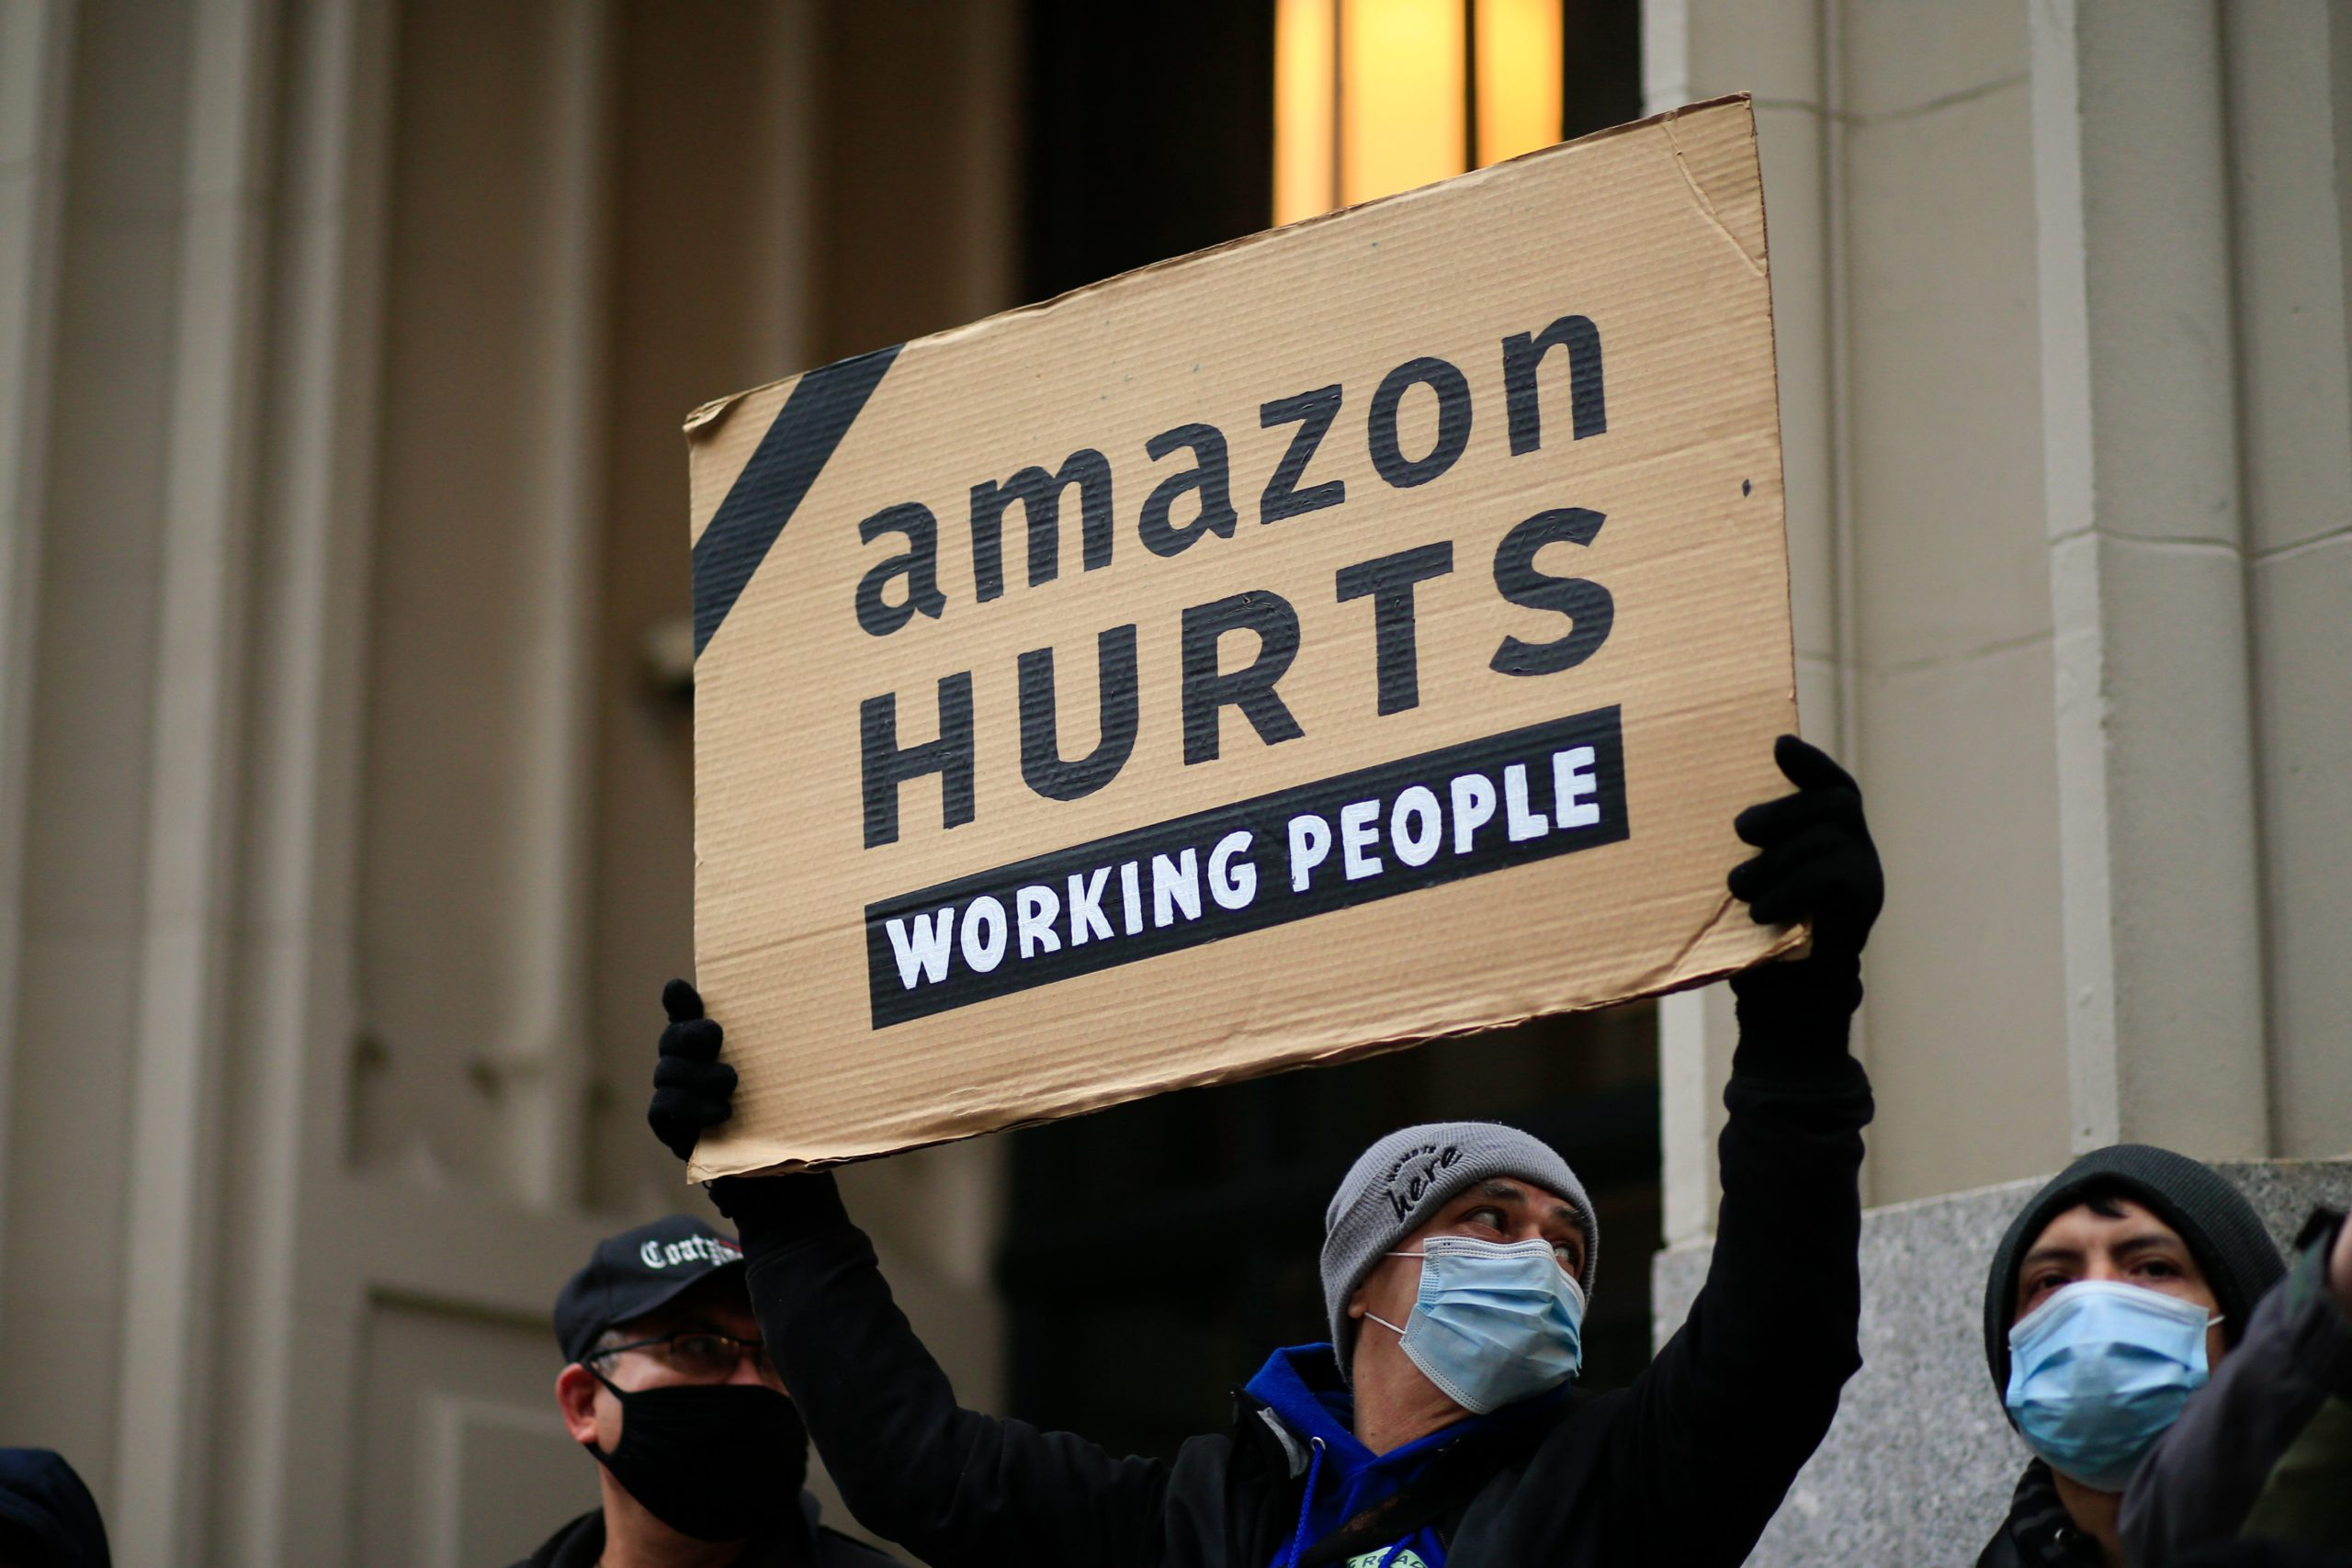 Amazon workers demonstrate during a protest in front of Jeff Bezos' New York City apartment on Dec. 2. (Kena Betancur/AFP via Getty Images)